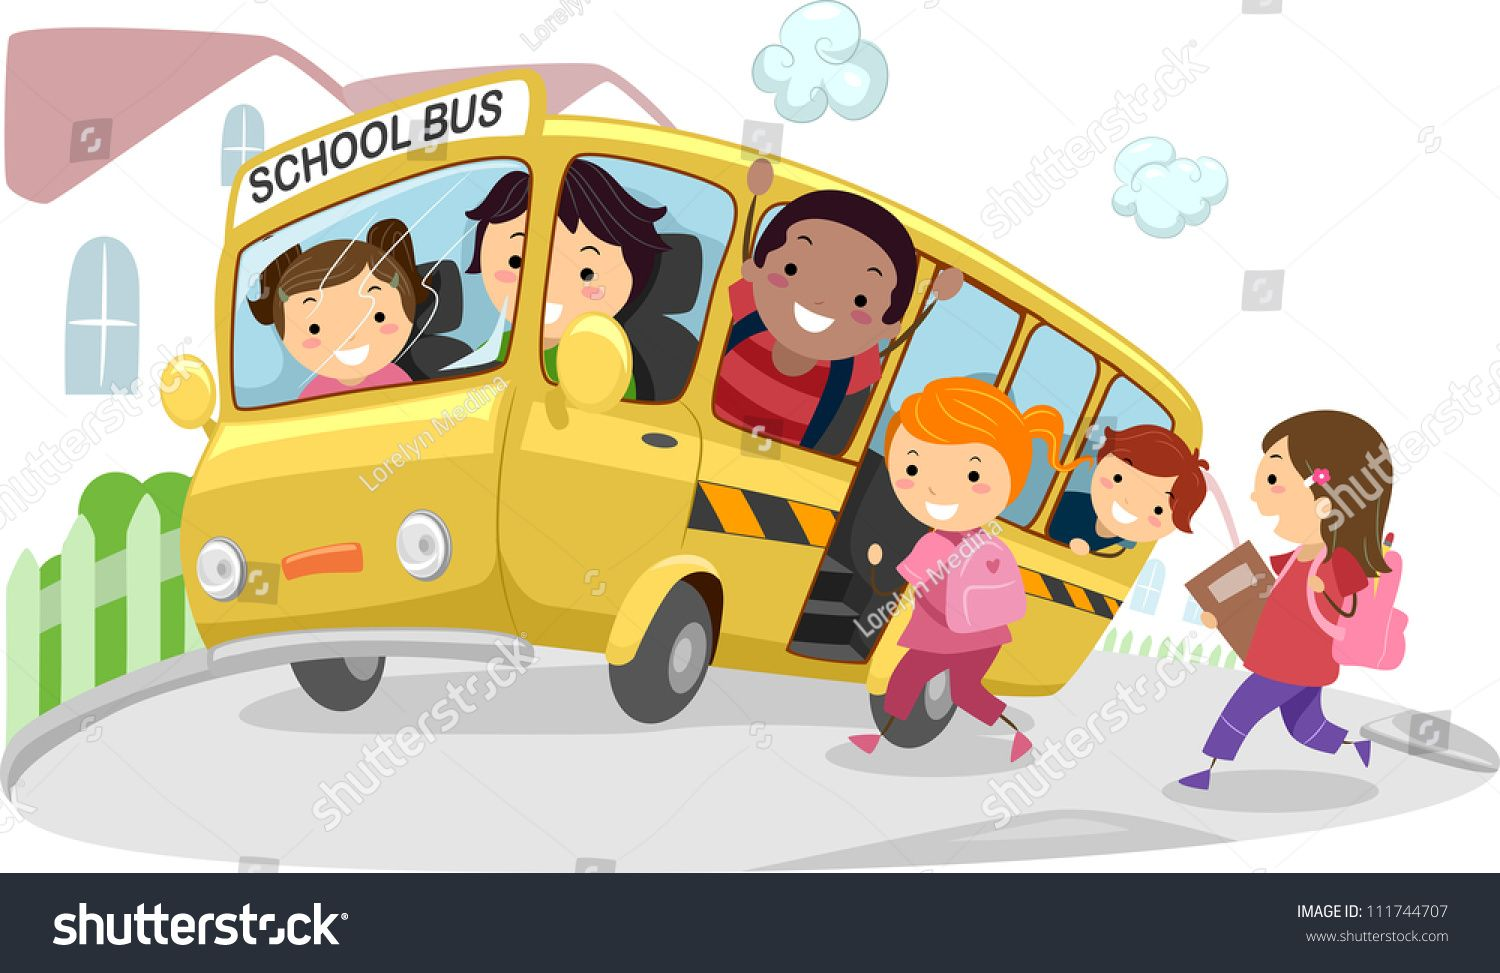 Illustration Of Kids Riding A School Bus On Its Way To School Ad Sponsored Kids Illustration Riding Riding School Bus Children Illustration Kids Ride On